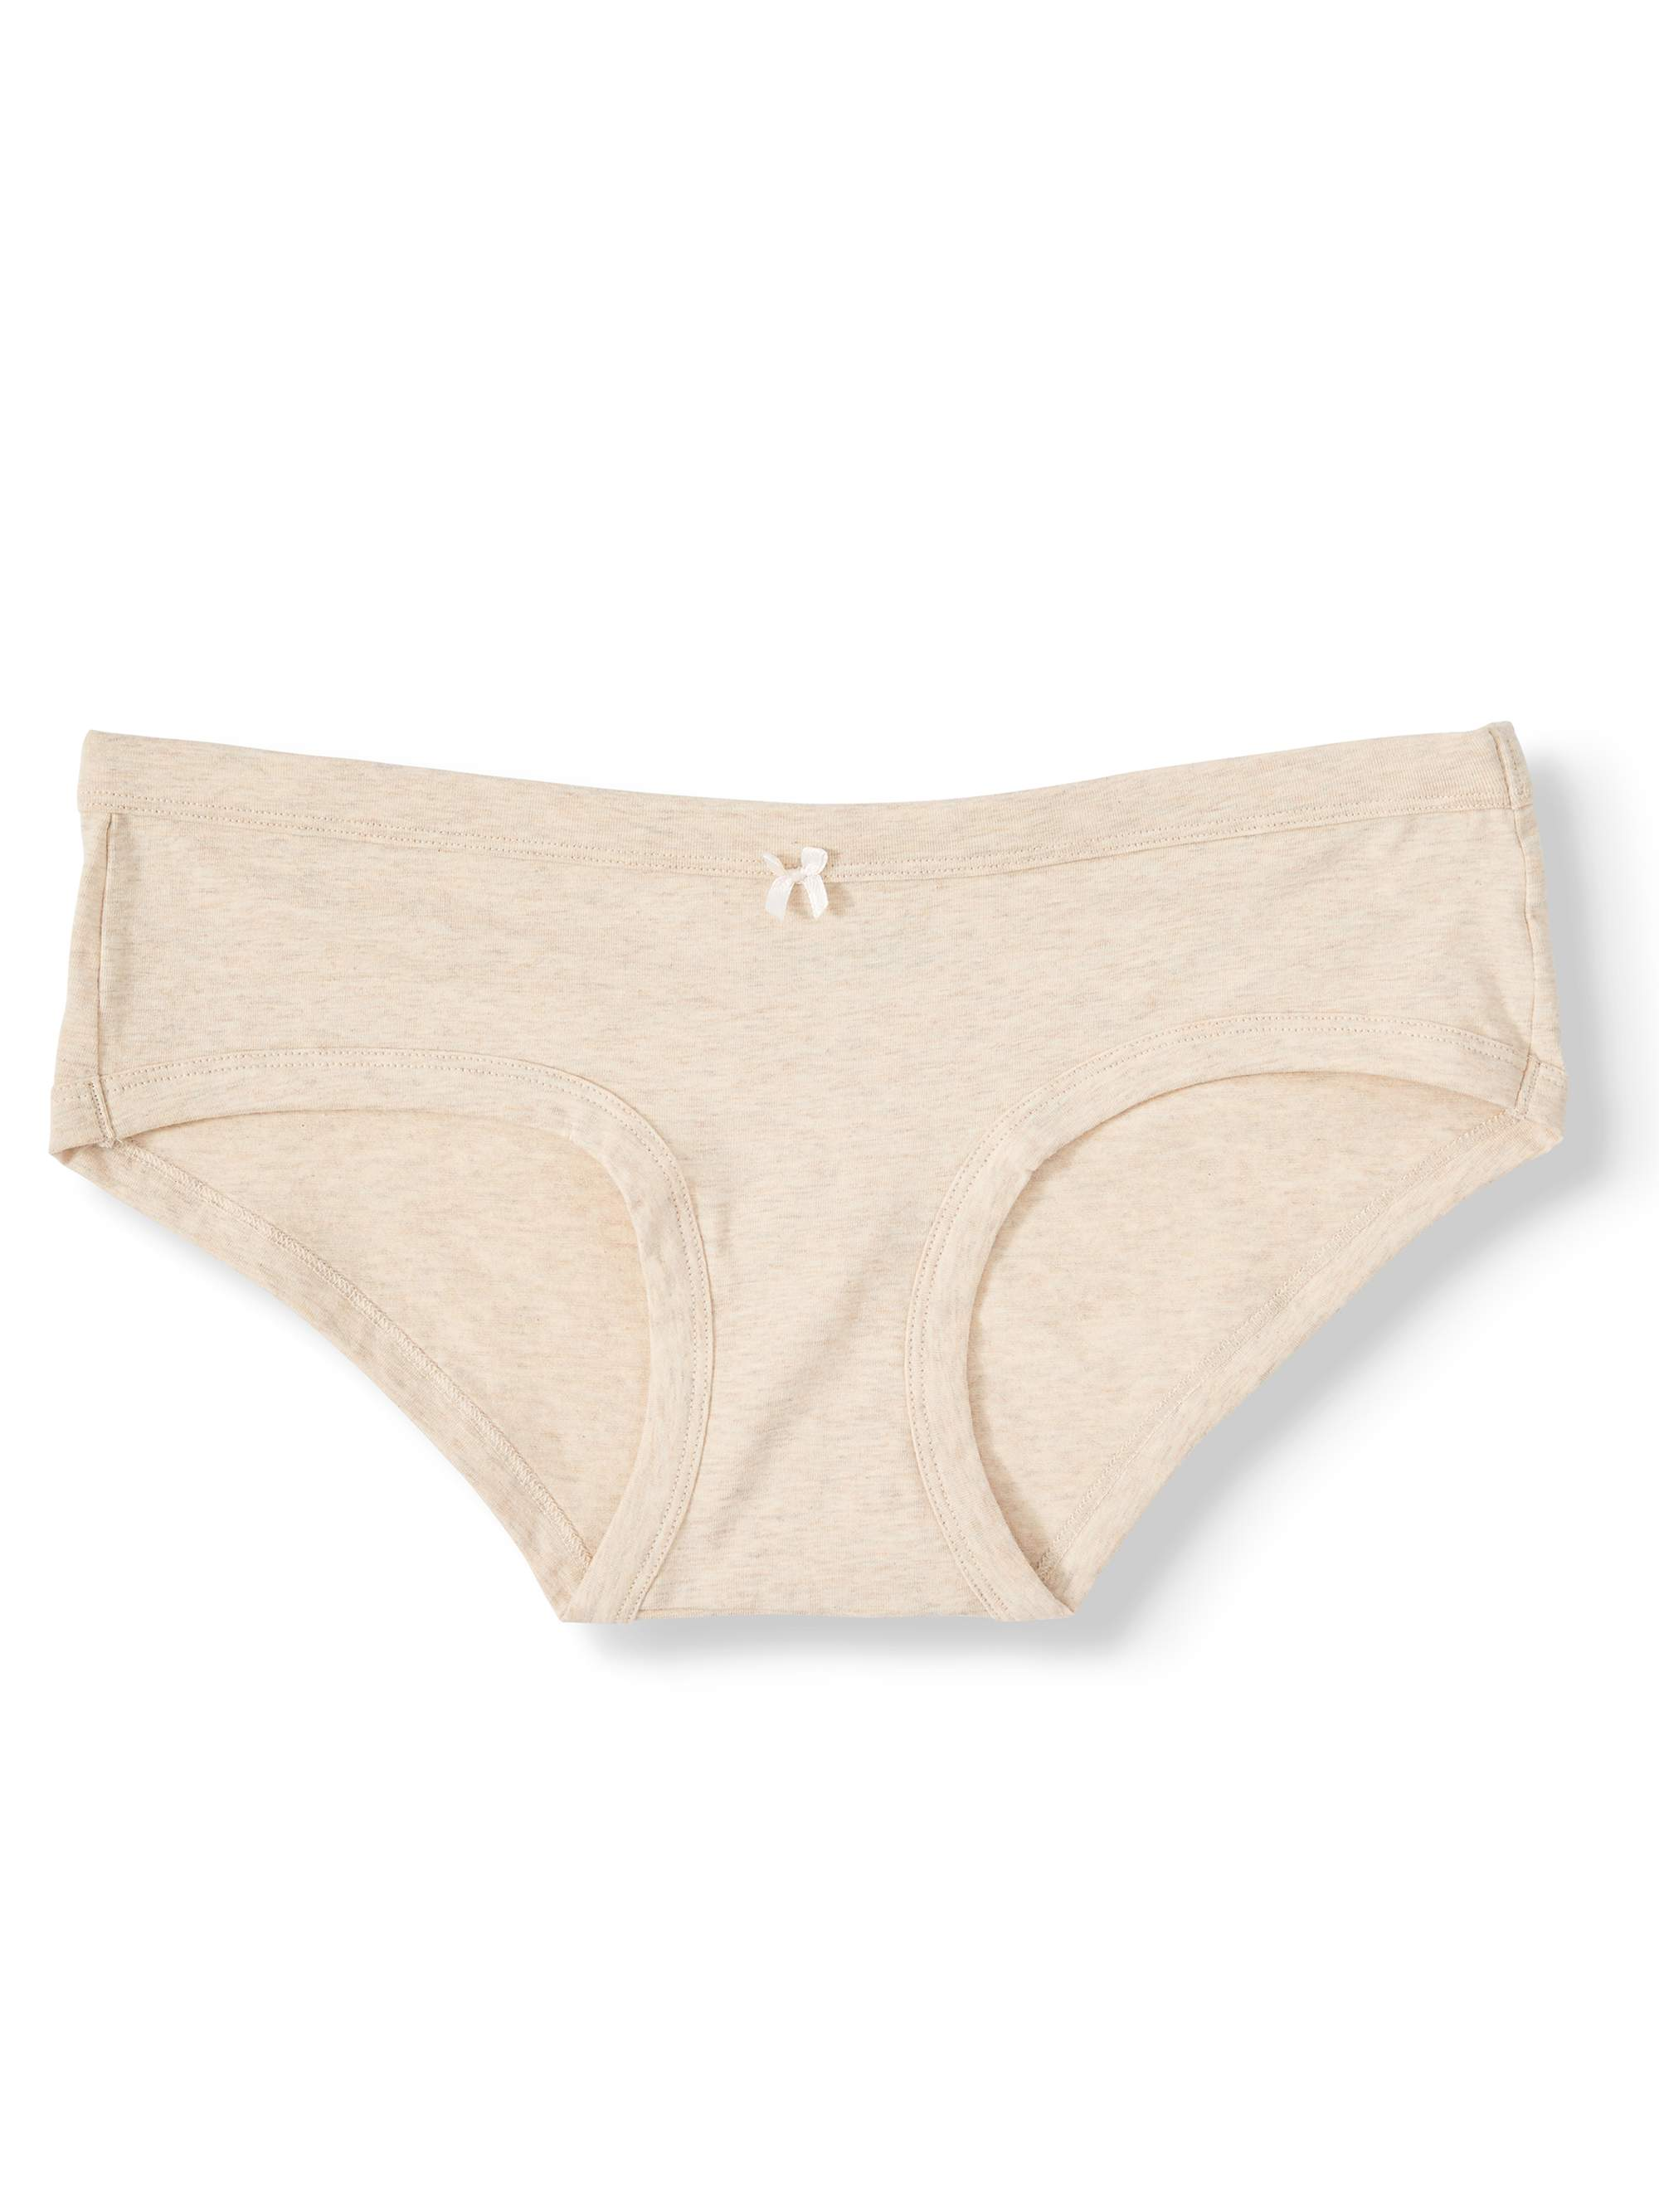 XXXL 6 PAIR NO BO UNDIES ..WOMENS SIZE 10 5 THONGS AND 1 HIPSTER Panty.